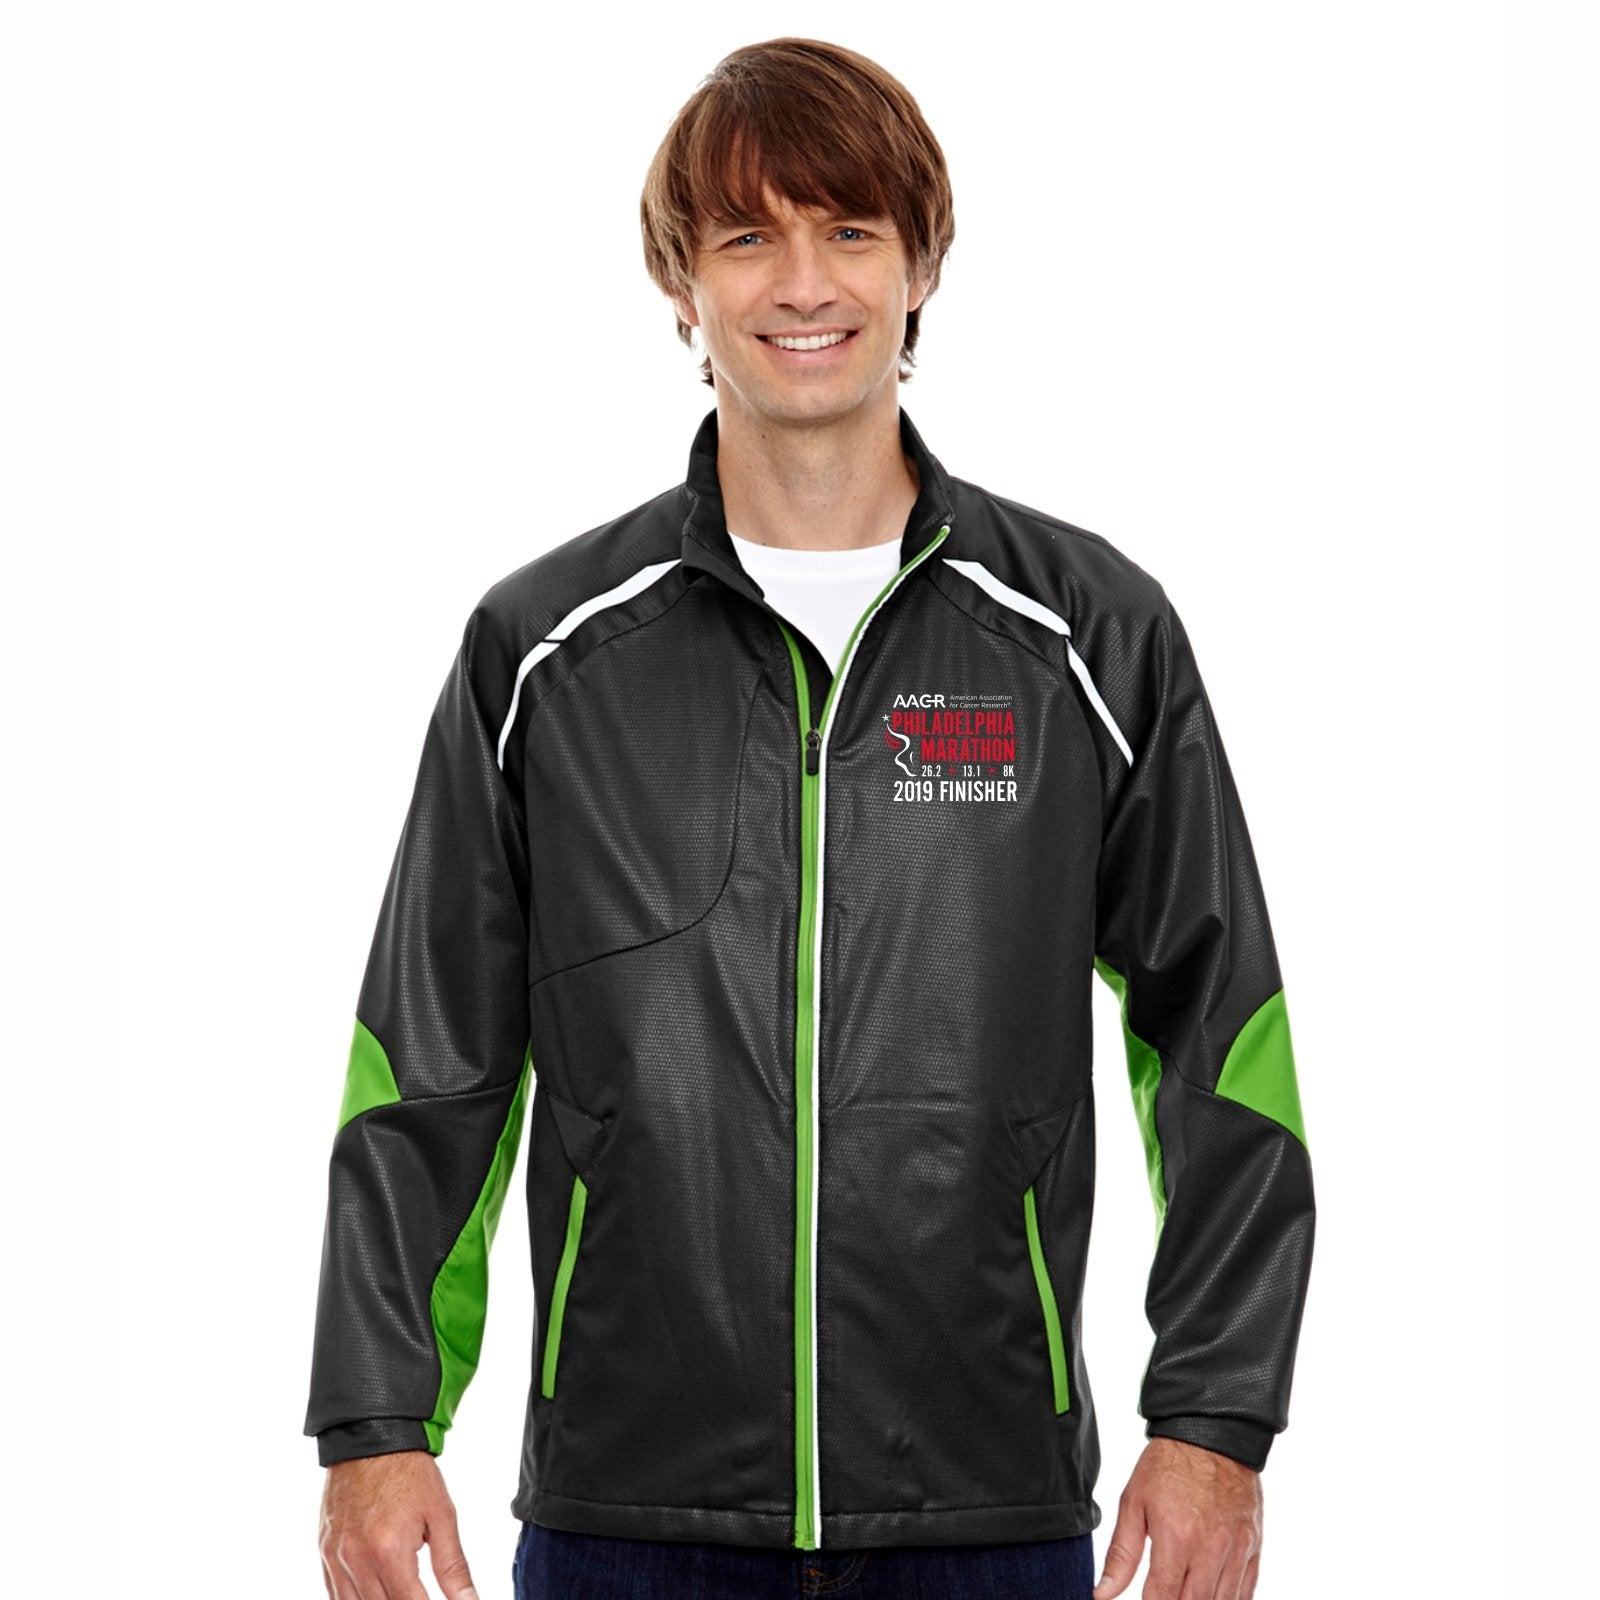 Men's 'Dynamo' Bonded Zip Jacket -Black / Acid Green 'Finisher 2019 Embr. Design' - AACR Philadelphia Marathon